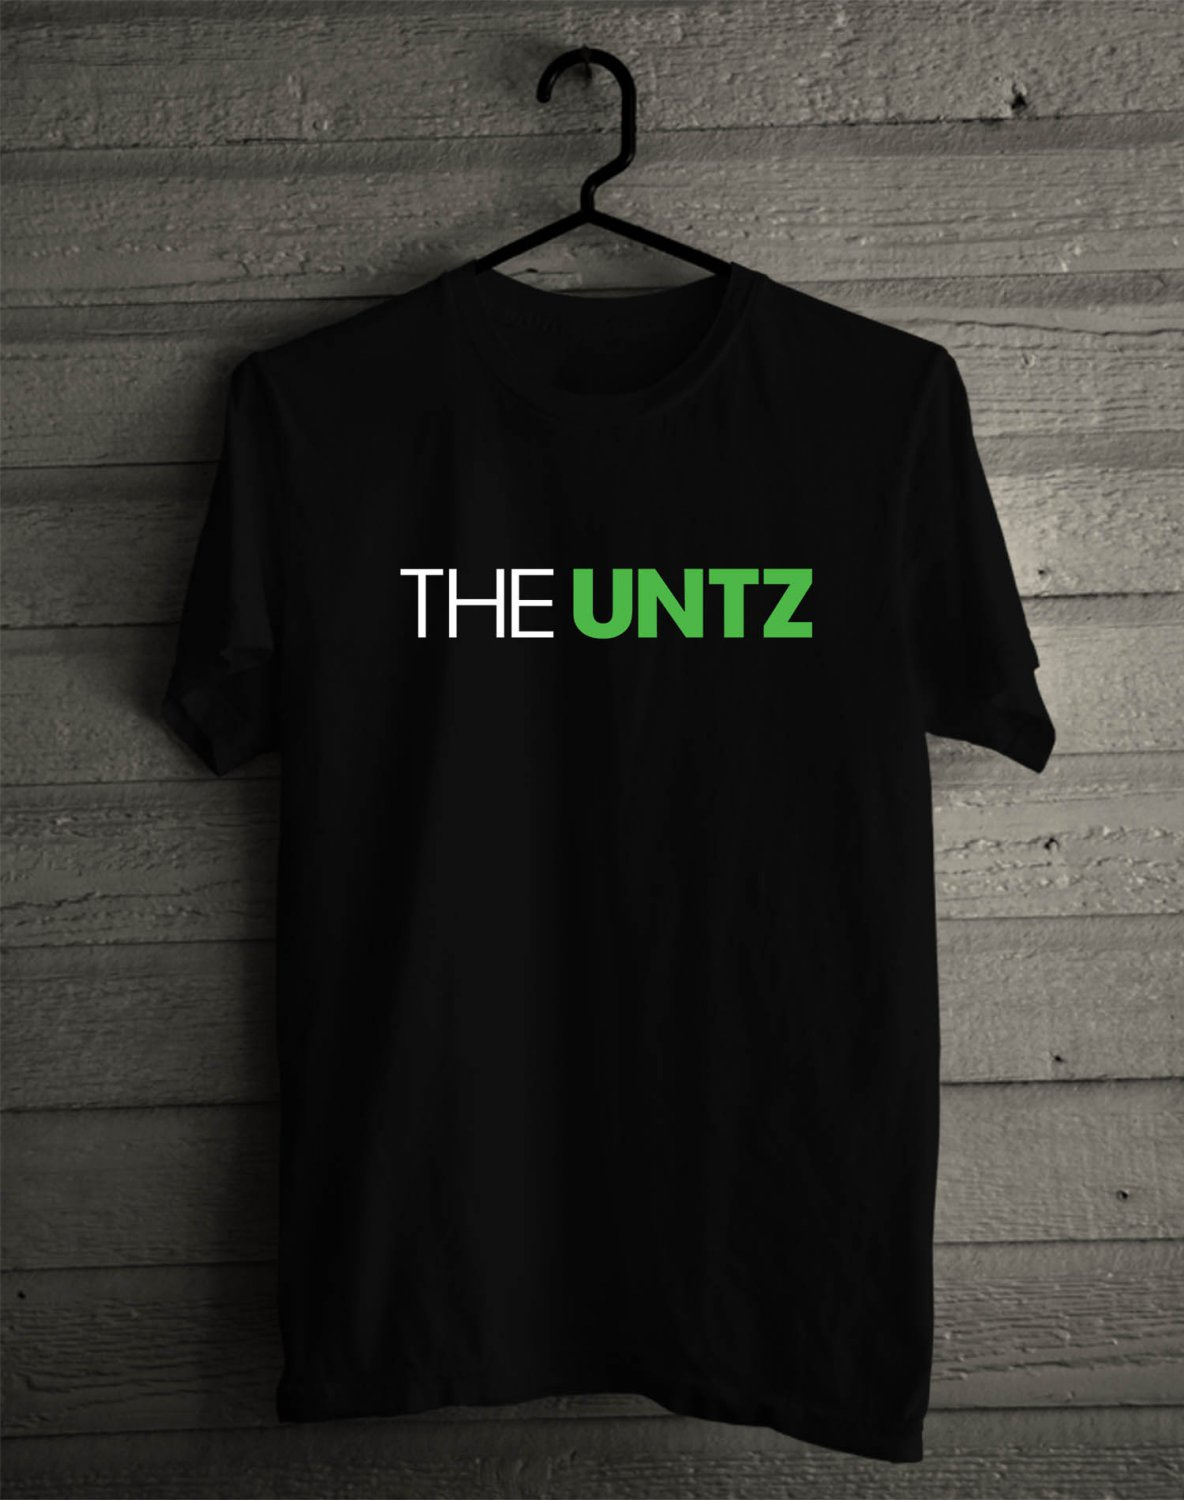 The Untz Festival logo Black Tee's Front Side by Complexart z1